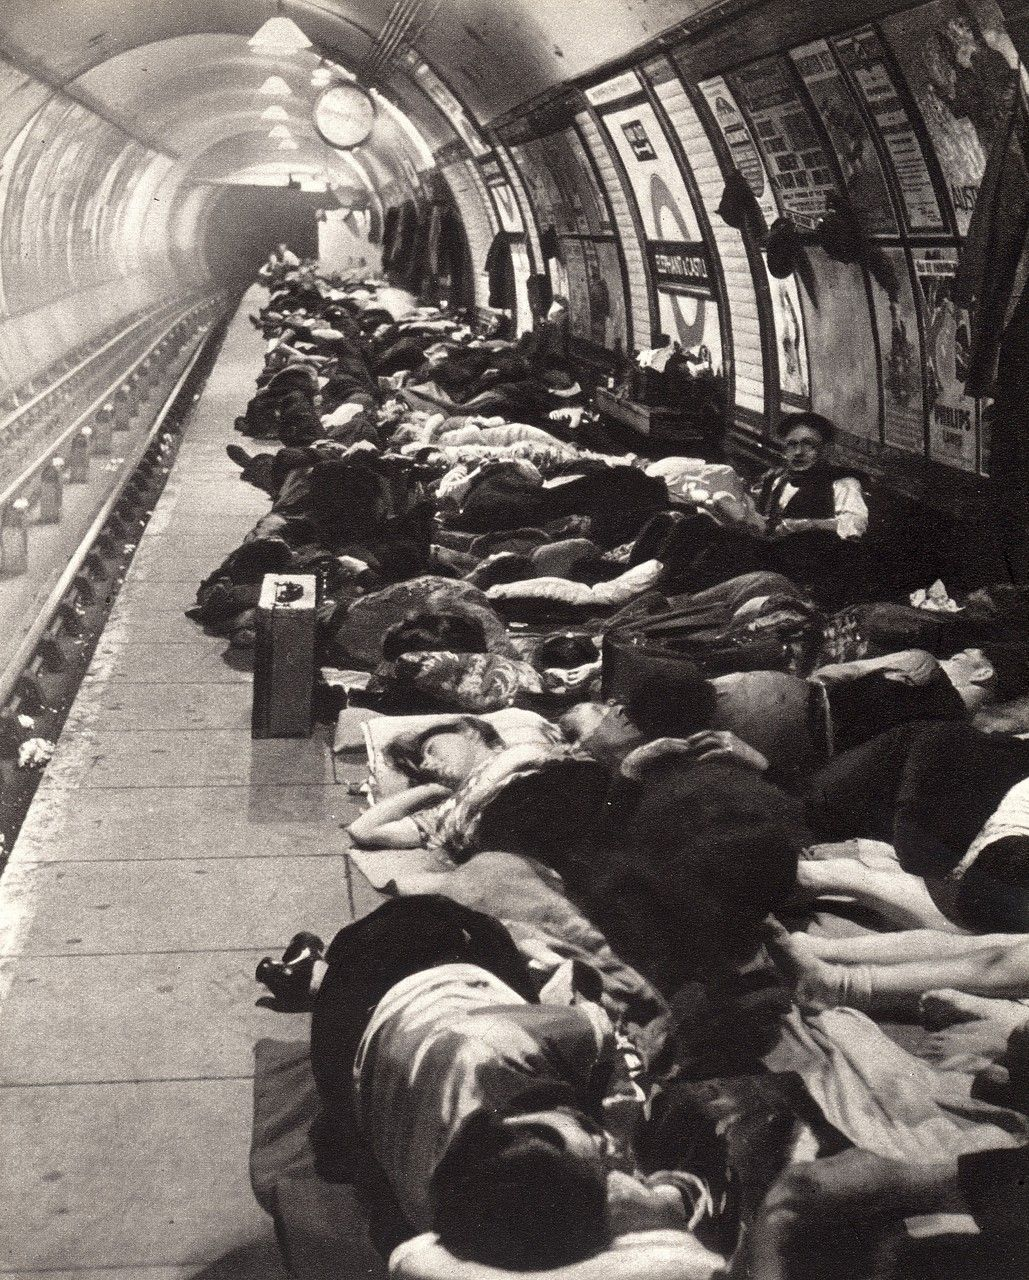 bomb shelter in a london underground station during the blitz